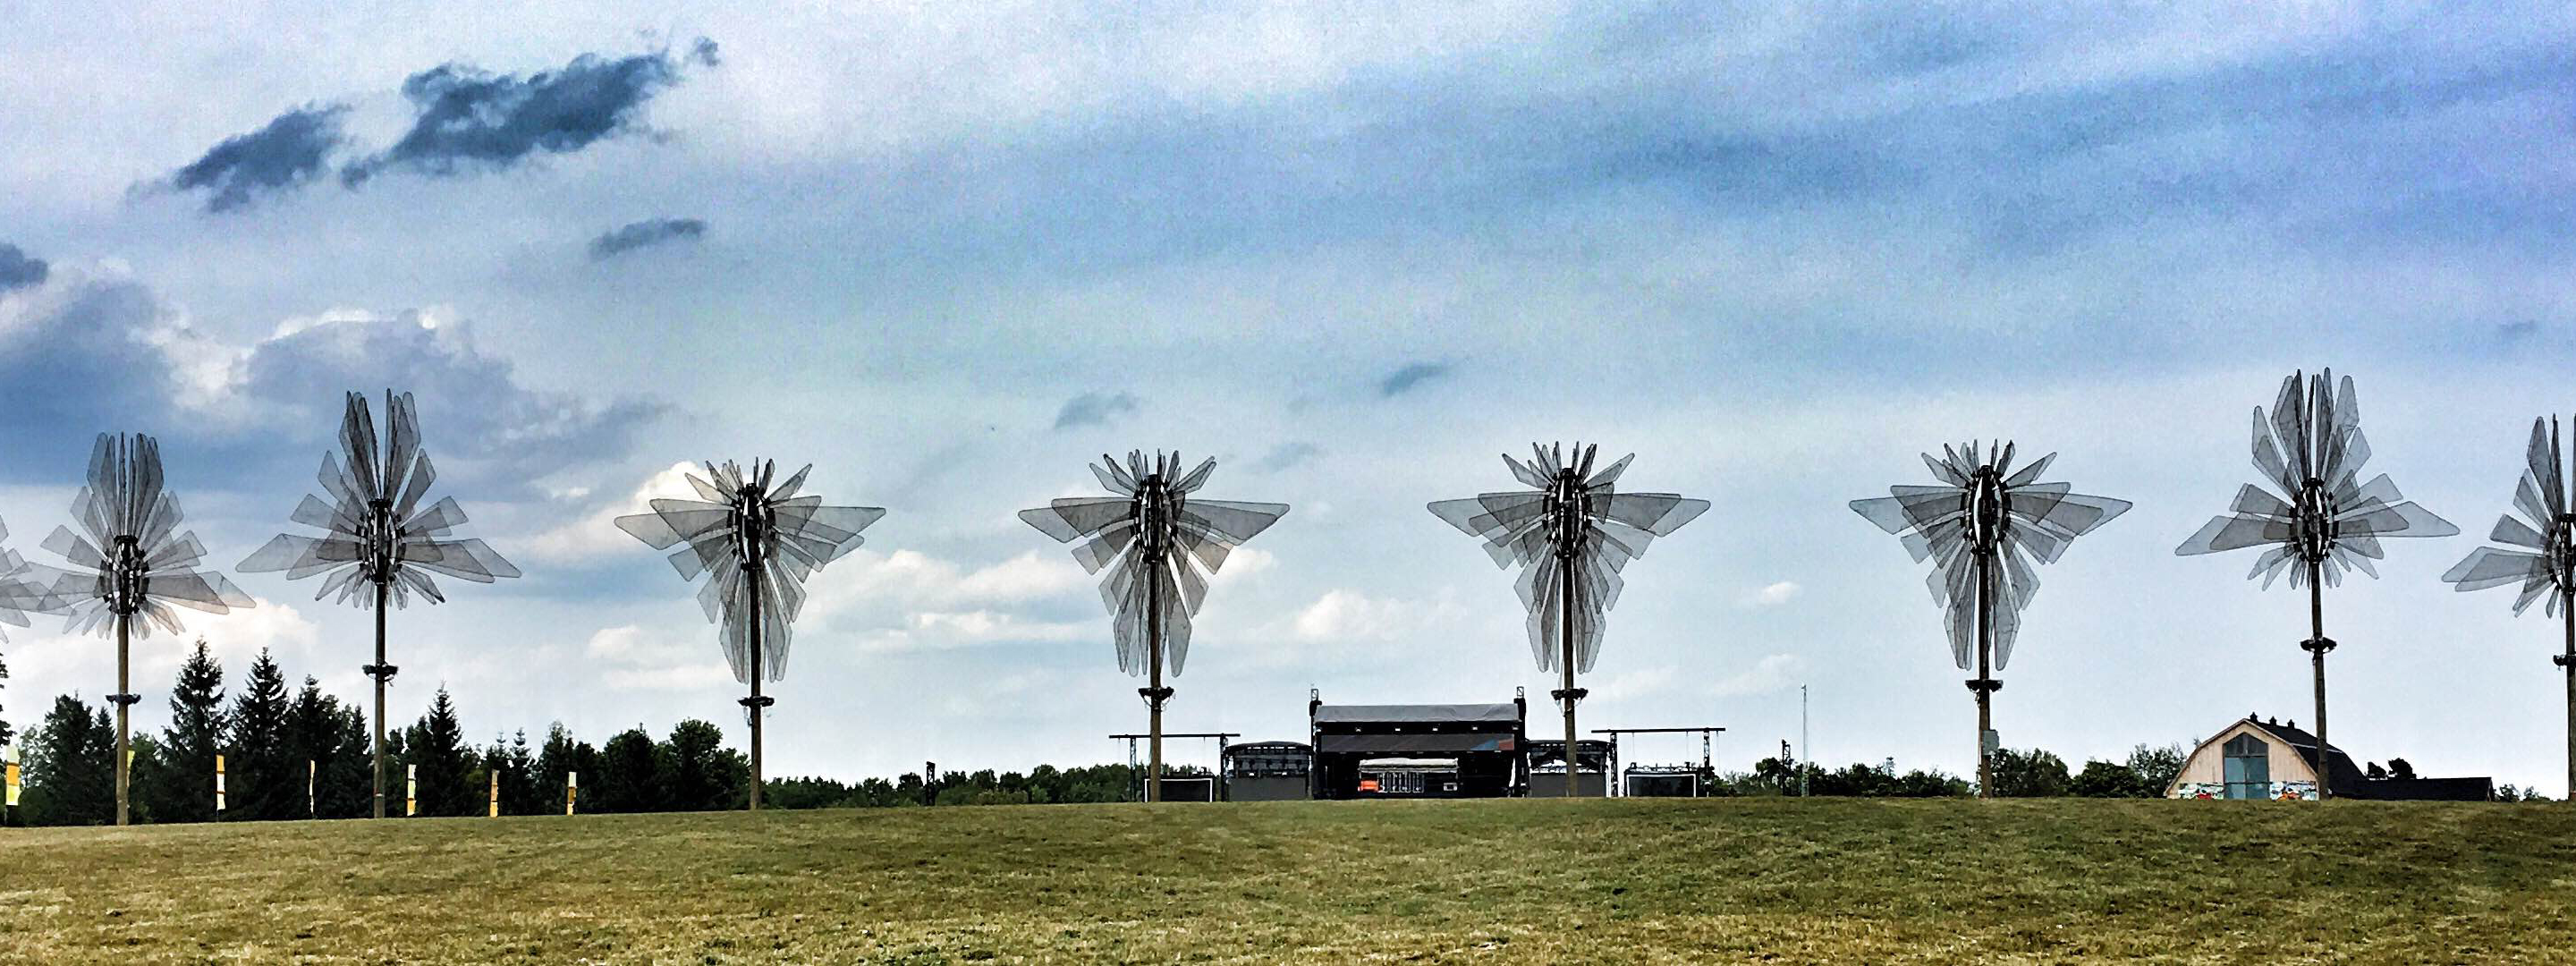 dragonflies-at-wayhome-festival